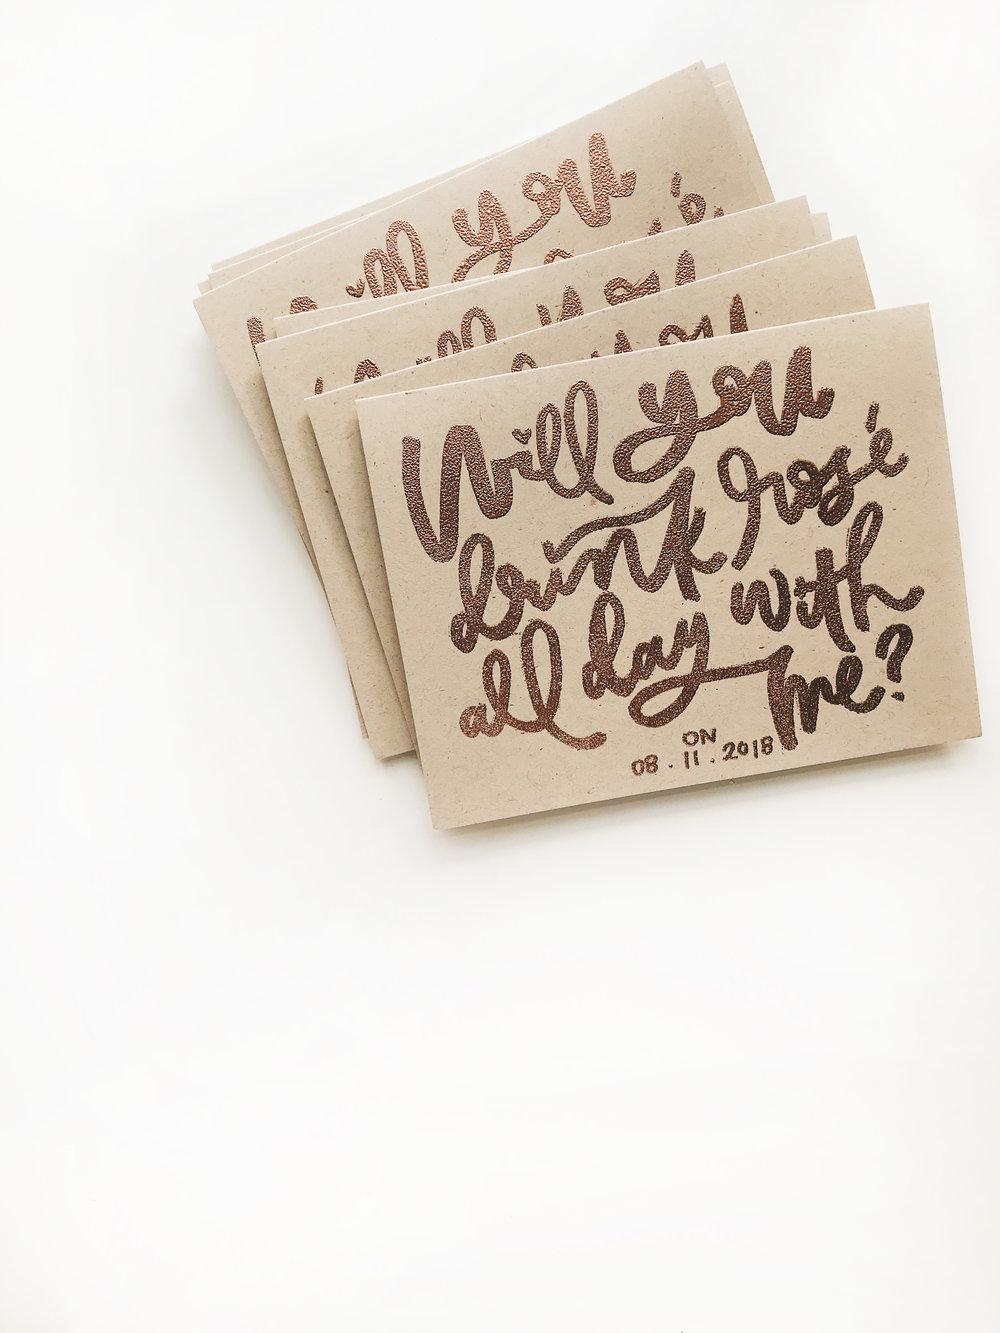 heylux_bridesmaids_card_handlettered_wedding.JPG